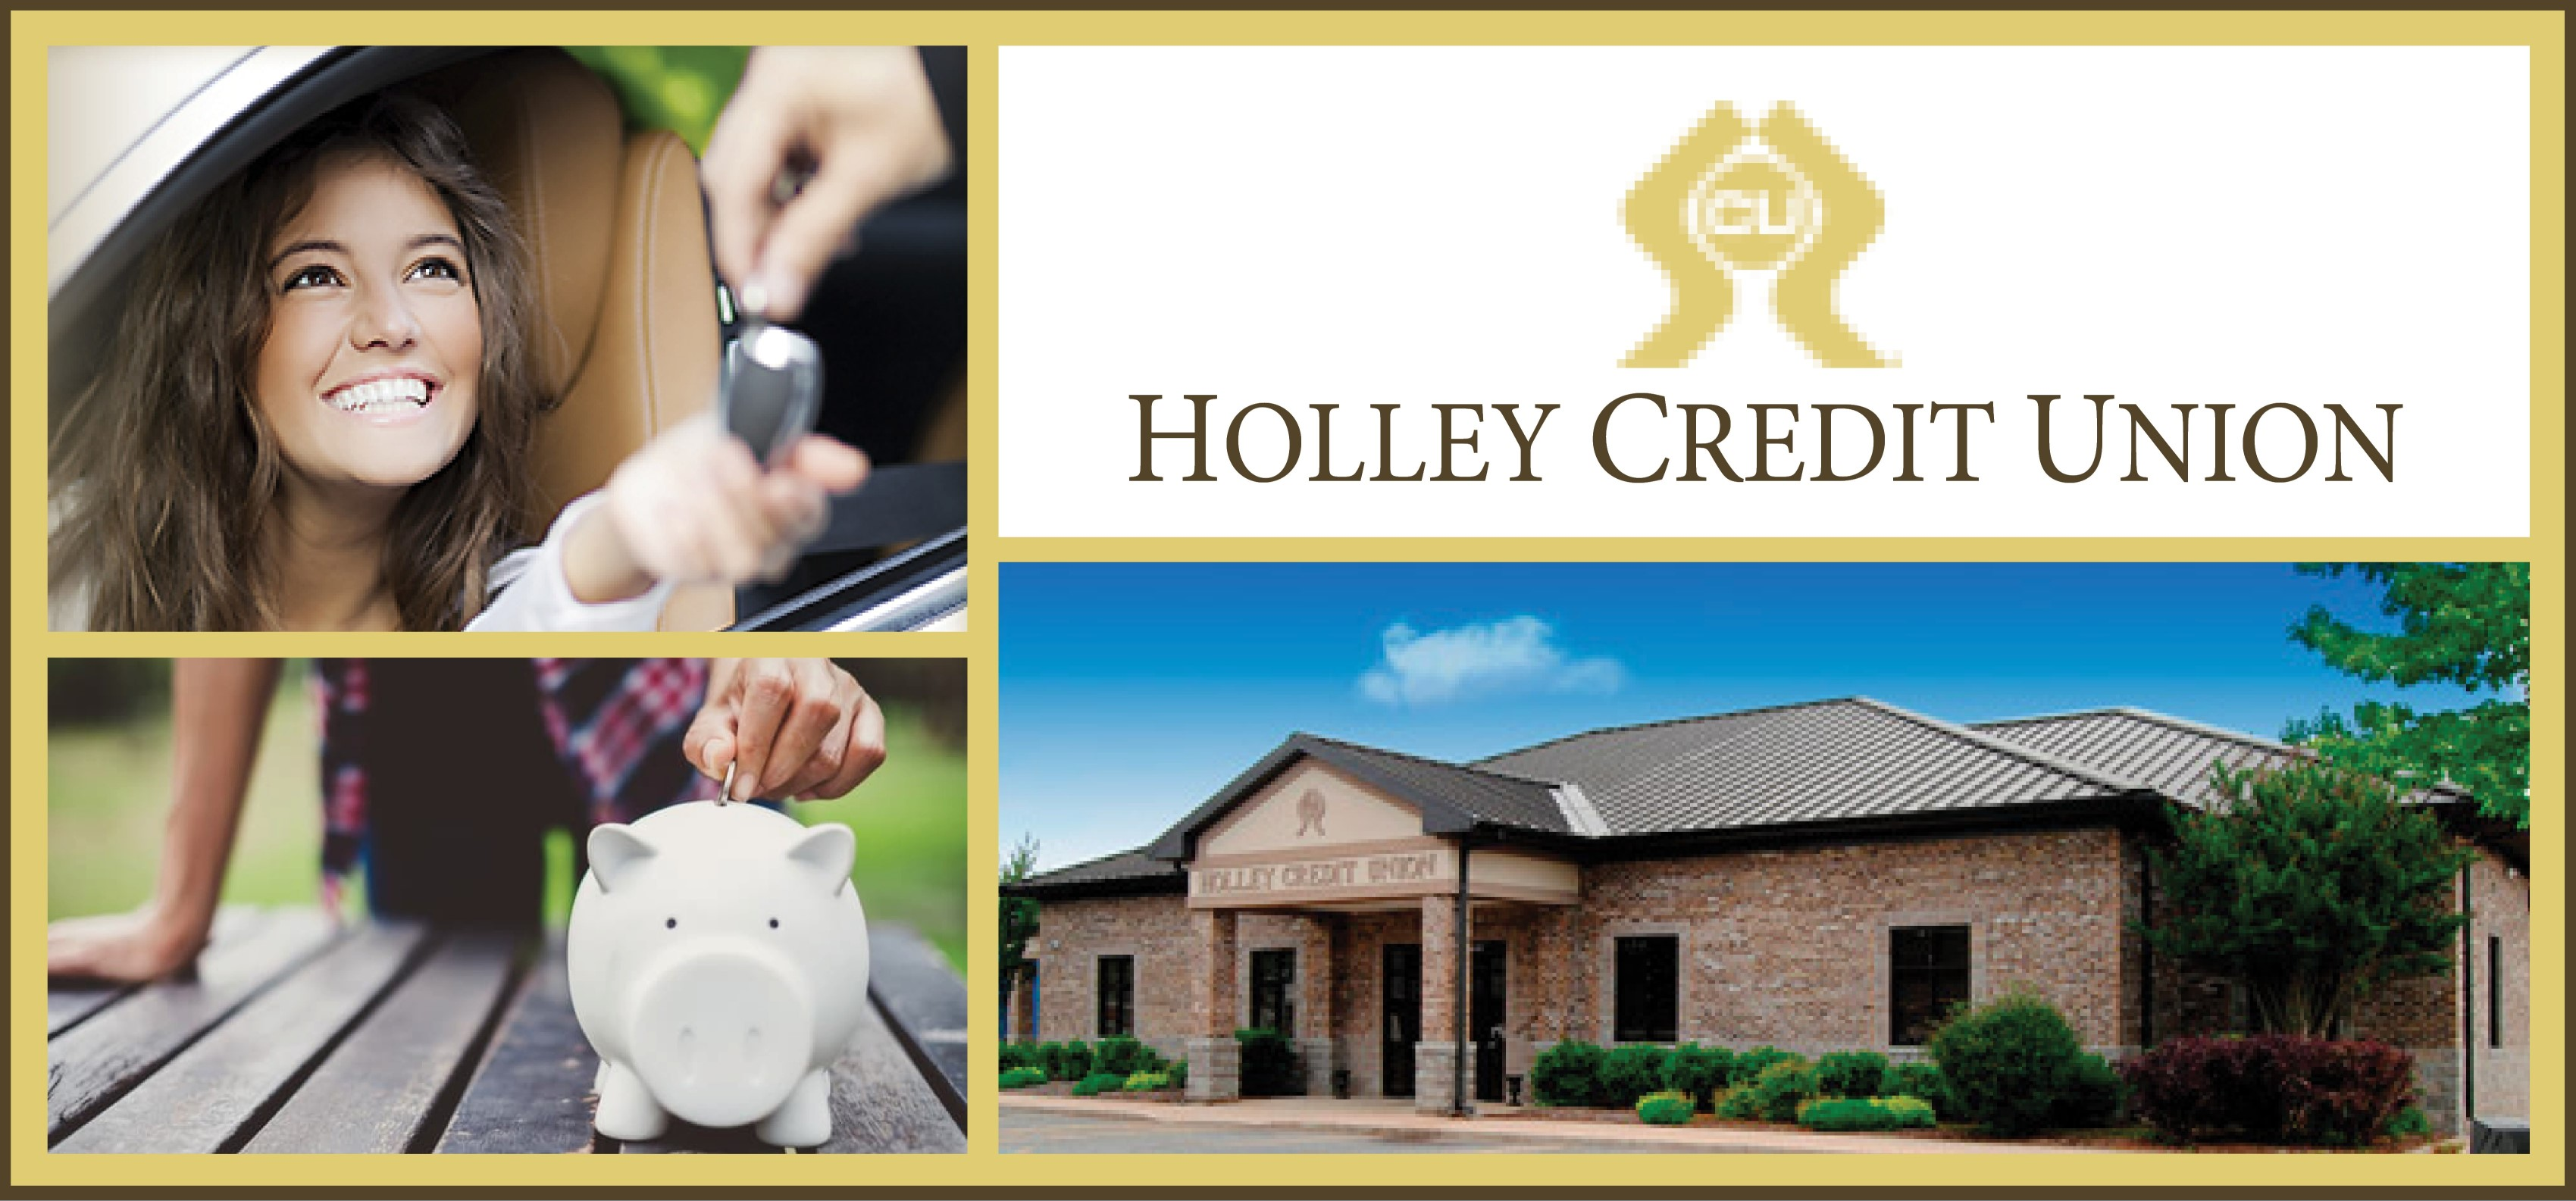 Holley Credit Union image 7 2 19